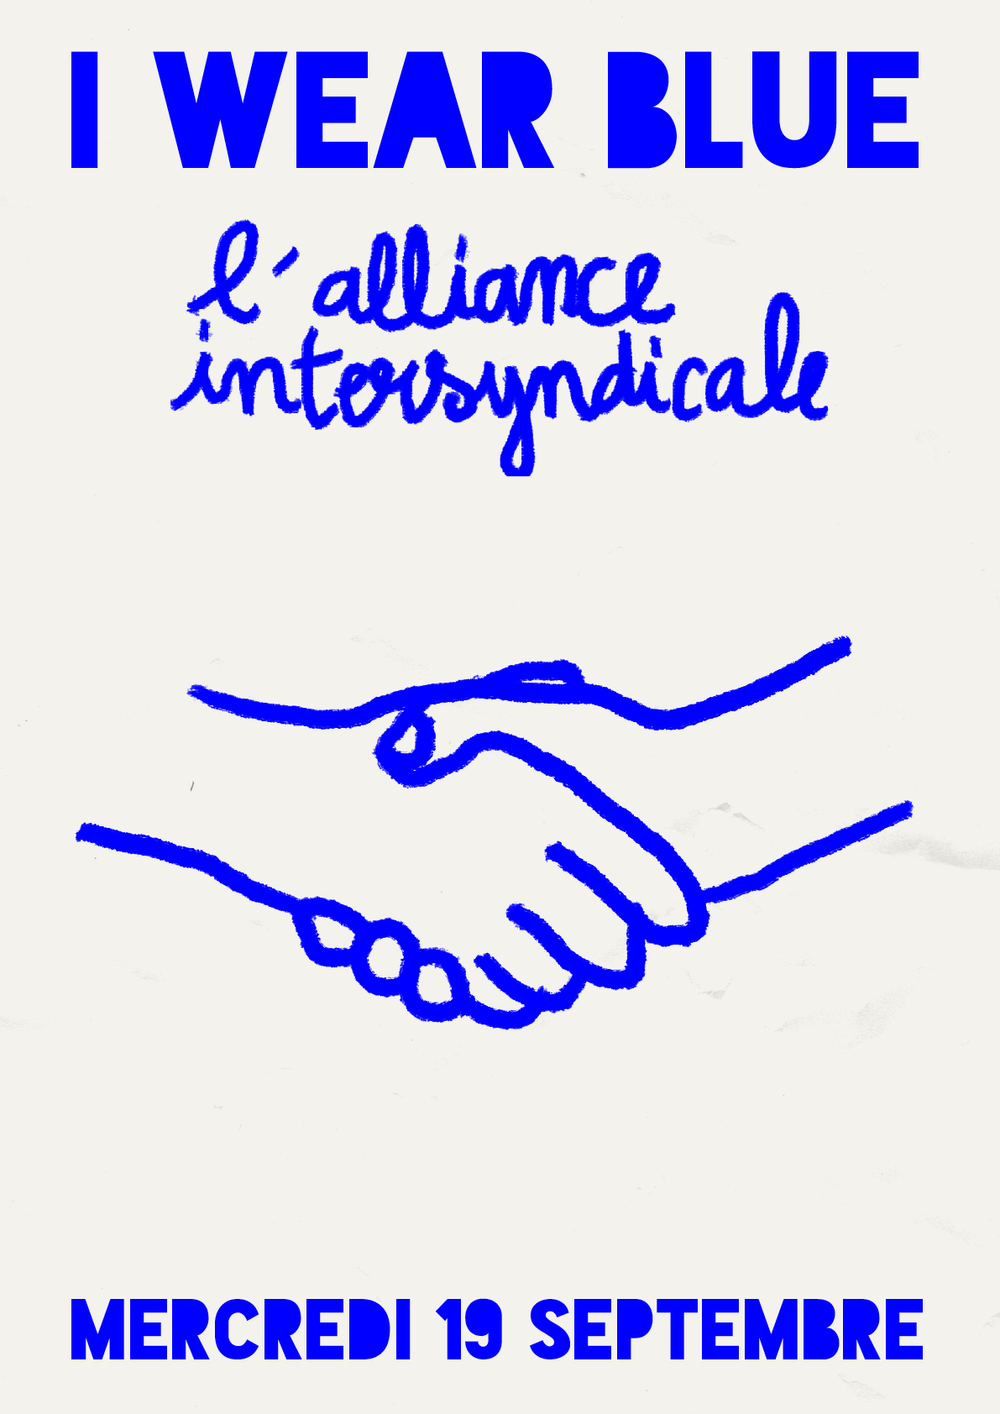 L'Alliance Intersyndicale - Afterwork: 6 - 9pmTalk with Tessa Moroder from Lotto Zero at 7pmDebate around fashion education with Casa 93 and graduates from Atelier Chardon Savard at 8pm